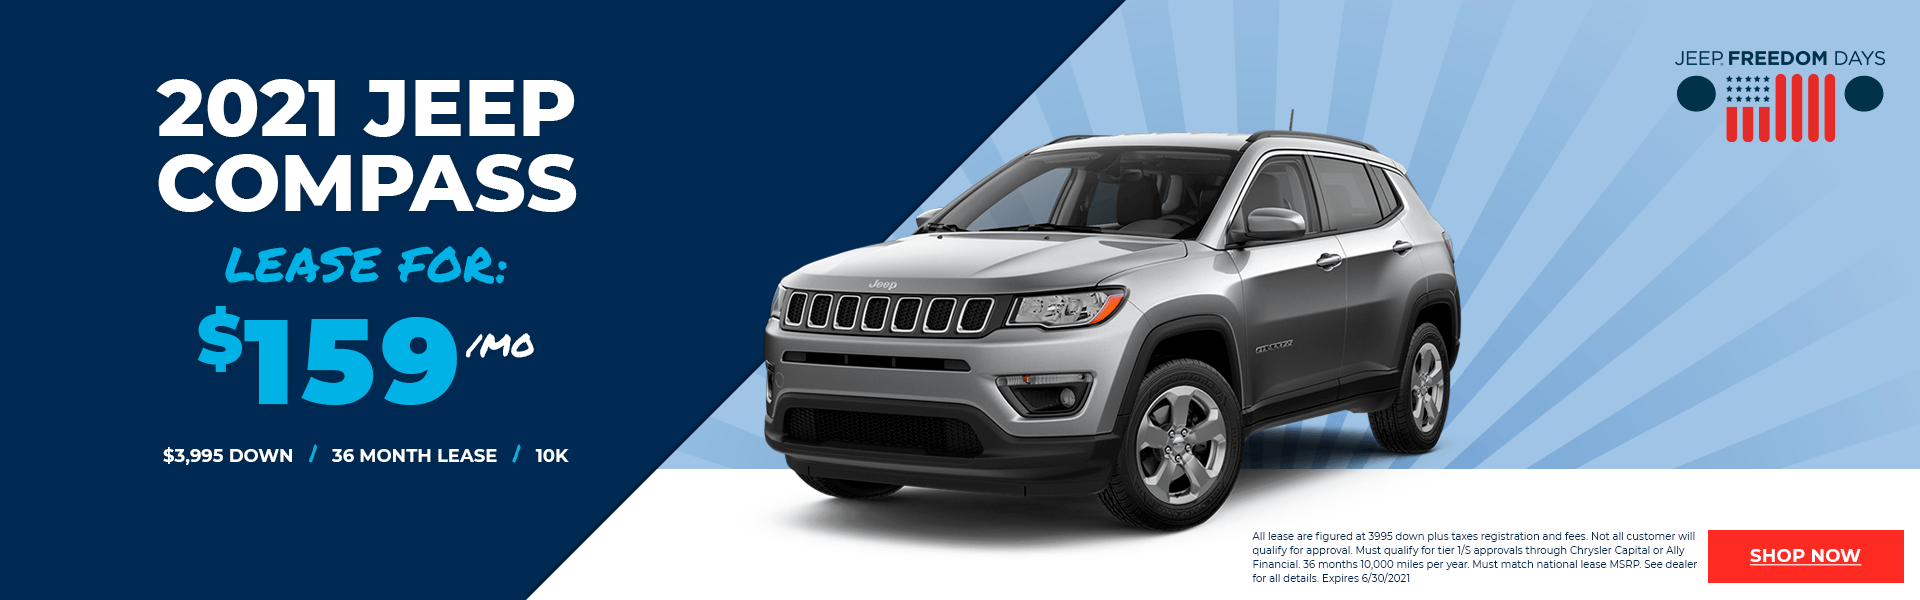 2021_New_Compass_Jeep_Freedom_Days_2